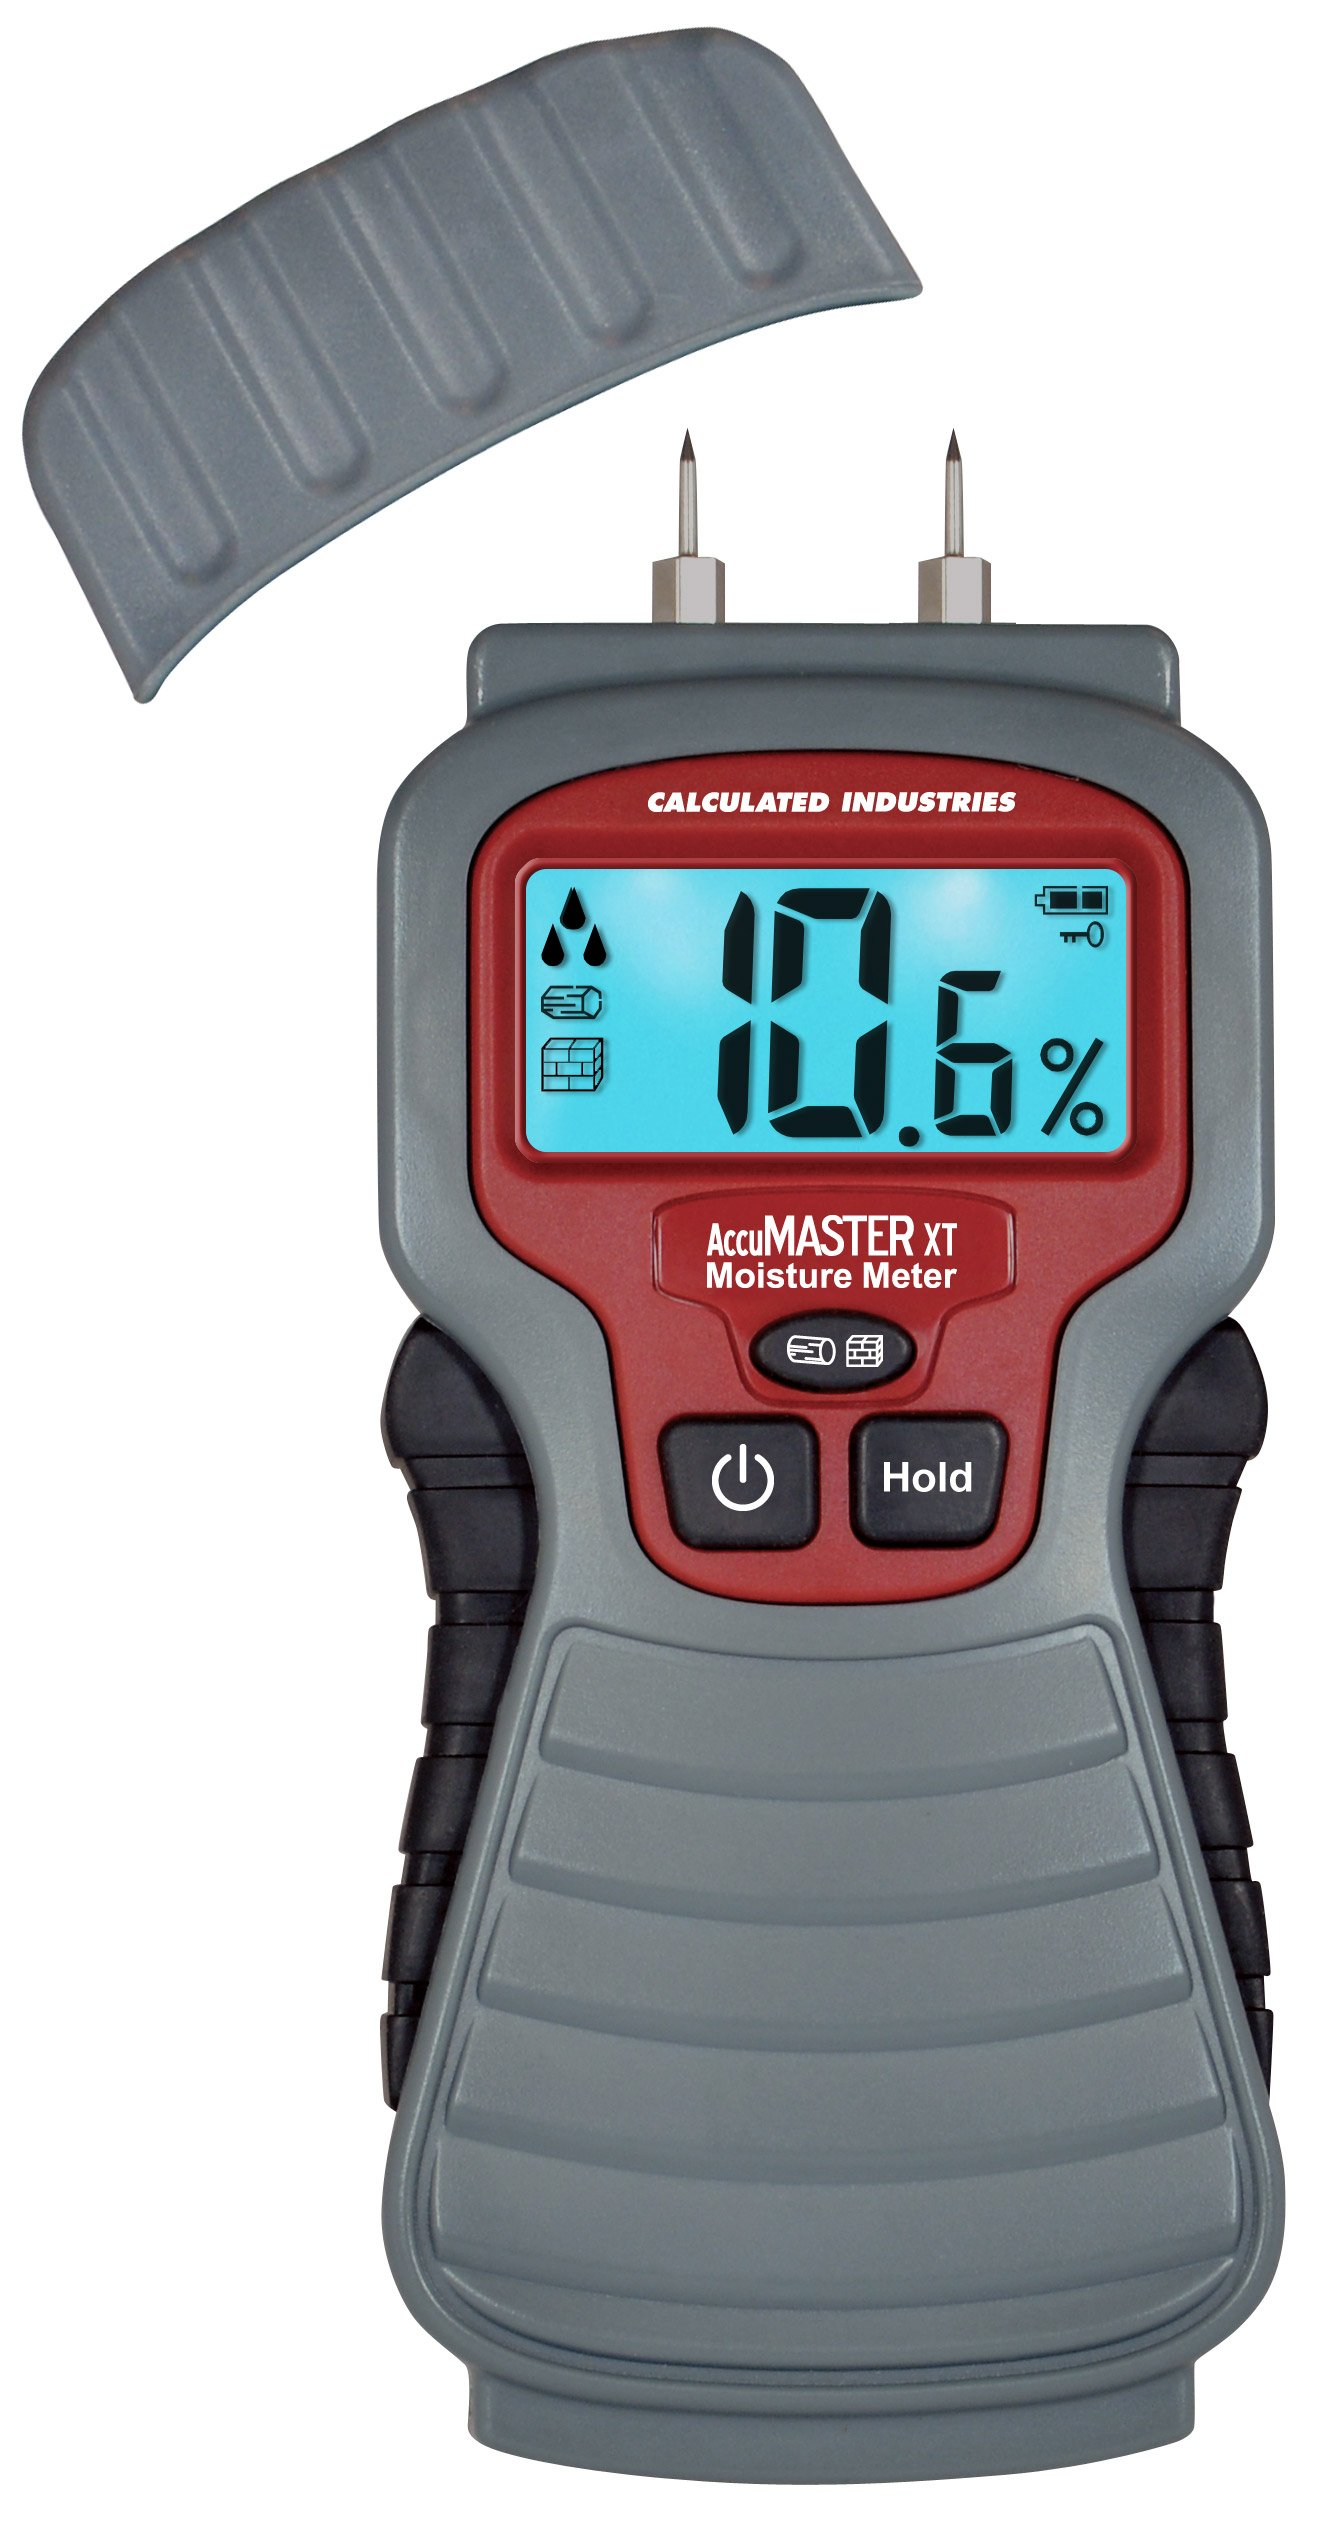 Calculated Industries 7440 AccuMASTER XT Digital Moisture Meter | Handheld |Pin Type | Backlit LCD Display | Detects Leaks, Damp and Moisture in Wood, Walls, Ceilings, Carpet and Firewood by Calculated Industries